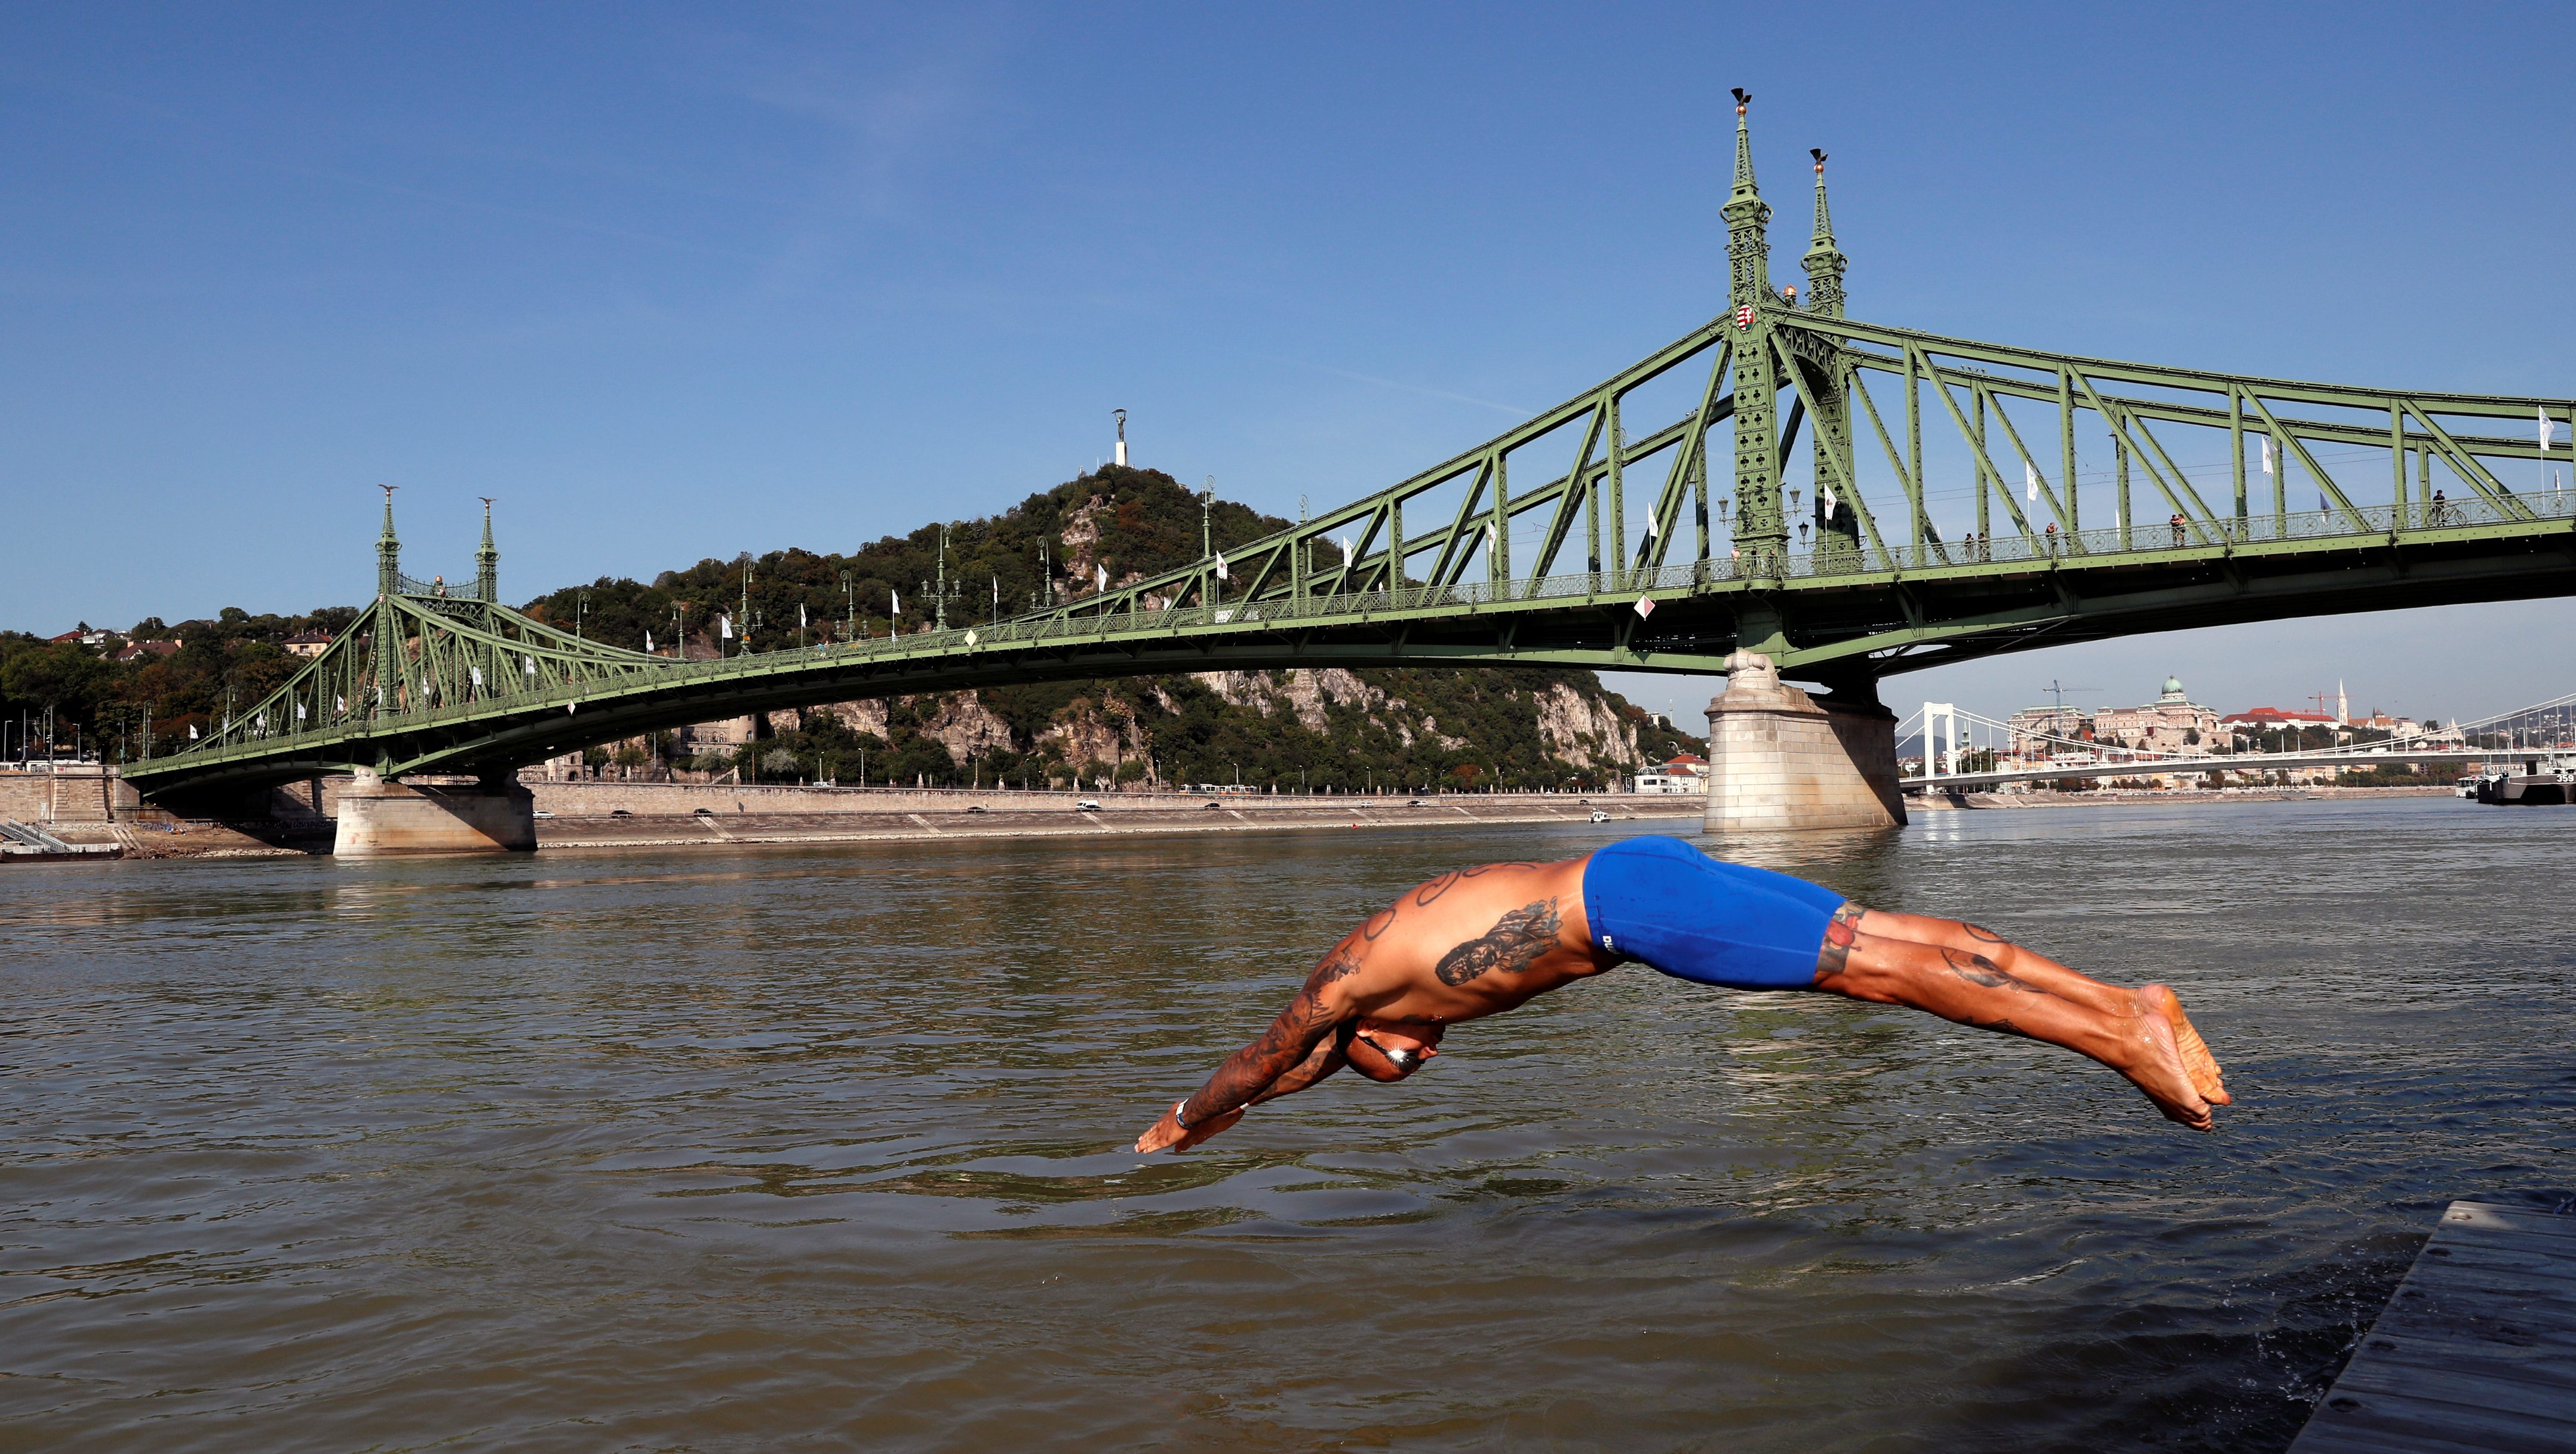 A swimmer dives into the Danube River on August 29, 2020.